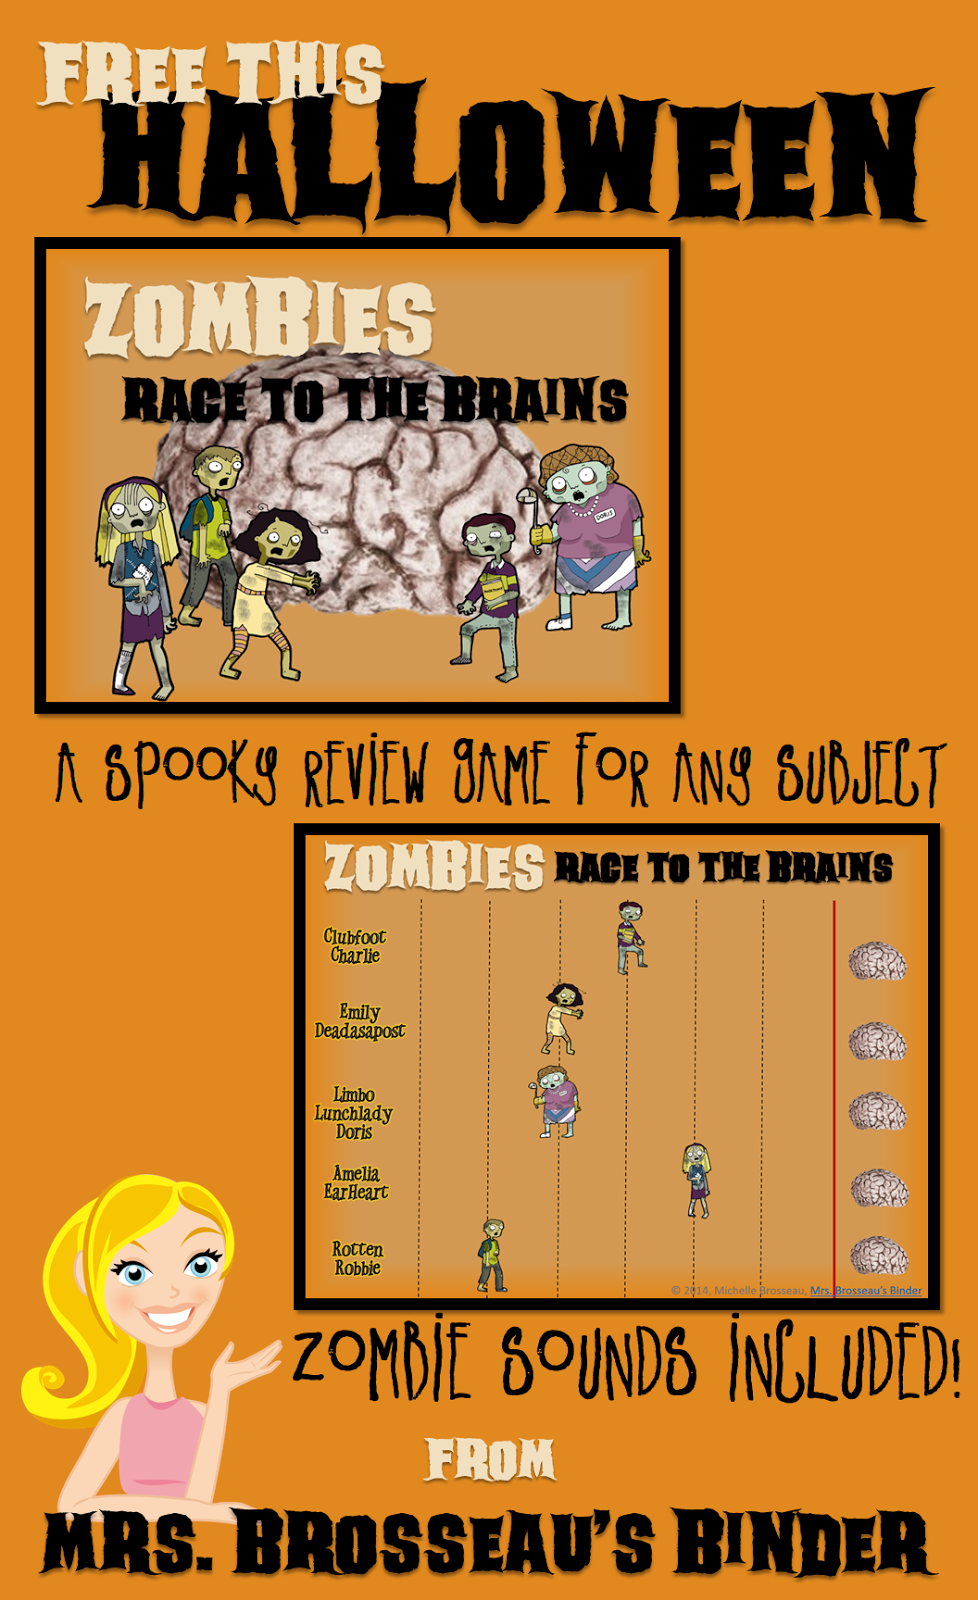 http://www.teacherspayteachers.com/Product/Zombies-Race-to-the-Brains-Halloween-PowerPoint-Review-Game-for-ANY-Subject-1484808